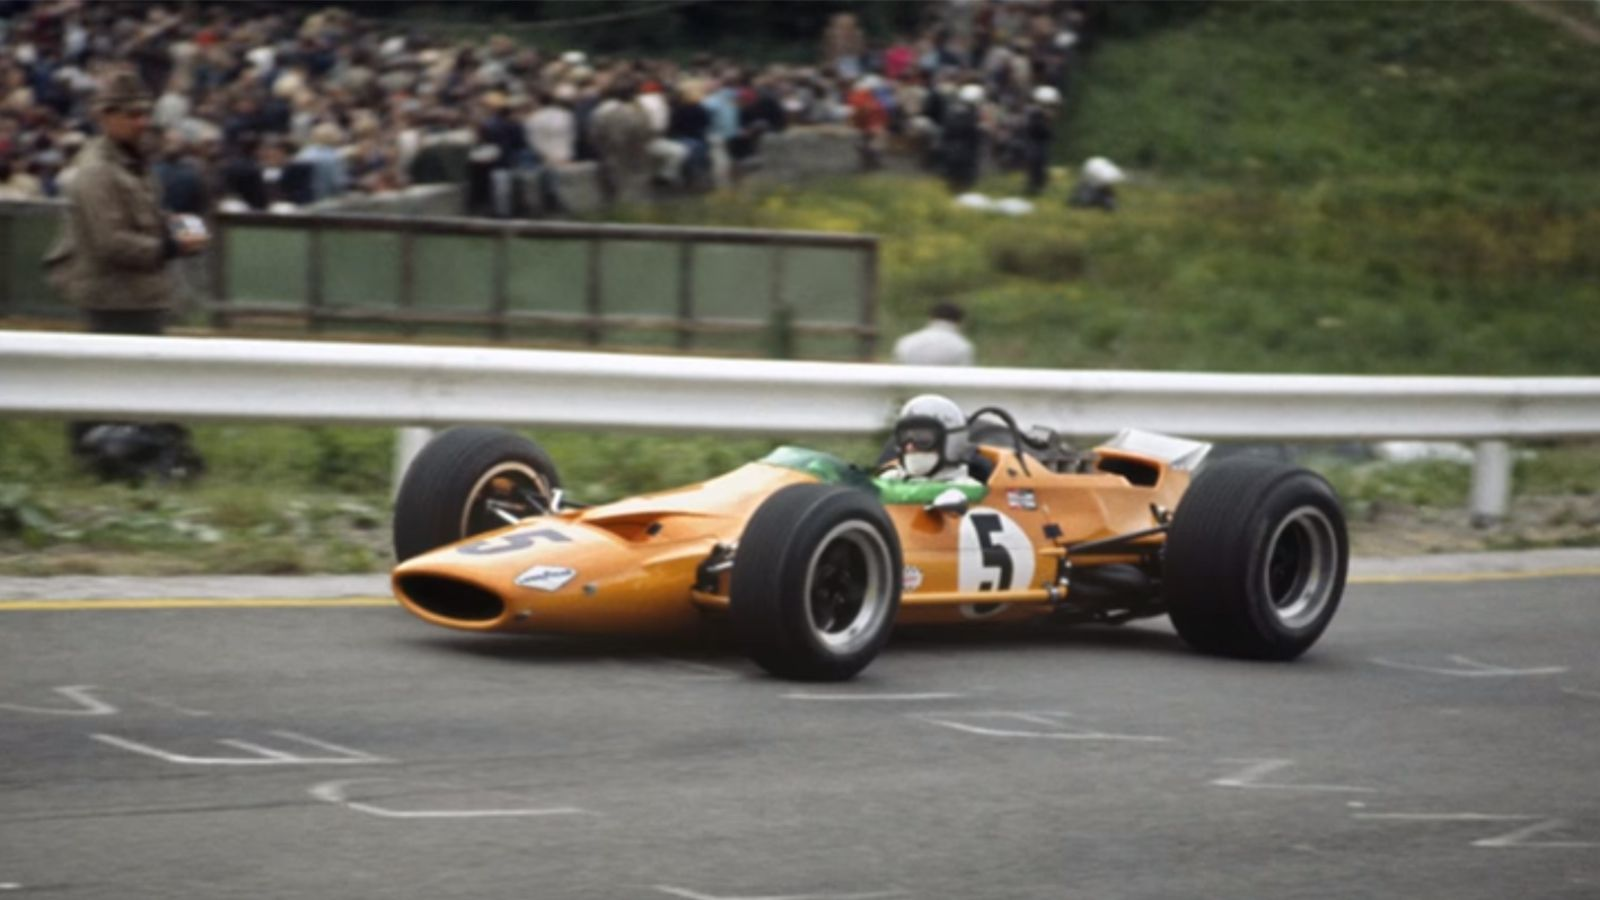 Victory Automotive Group >> McLaren Formula 1 - Commemorating Bruce McLaren's 80th Birthday